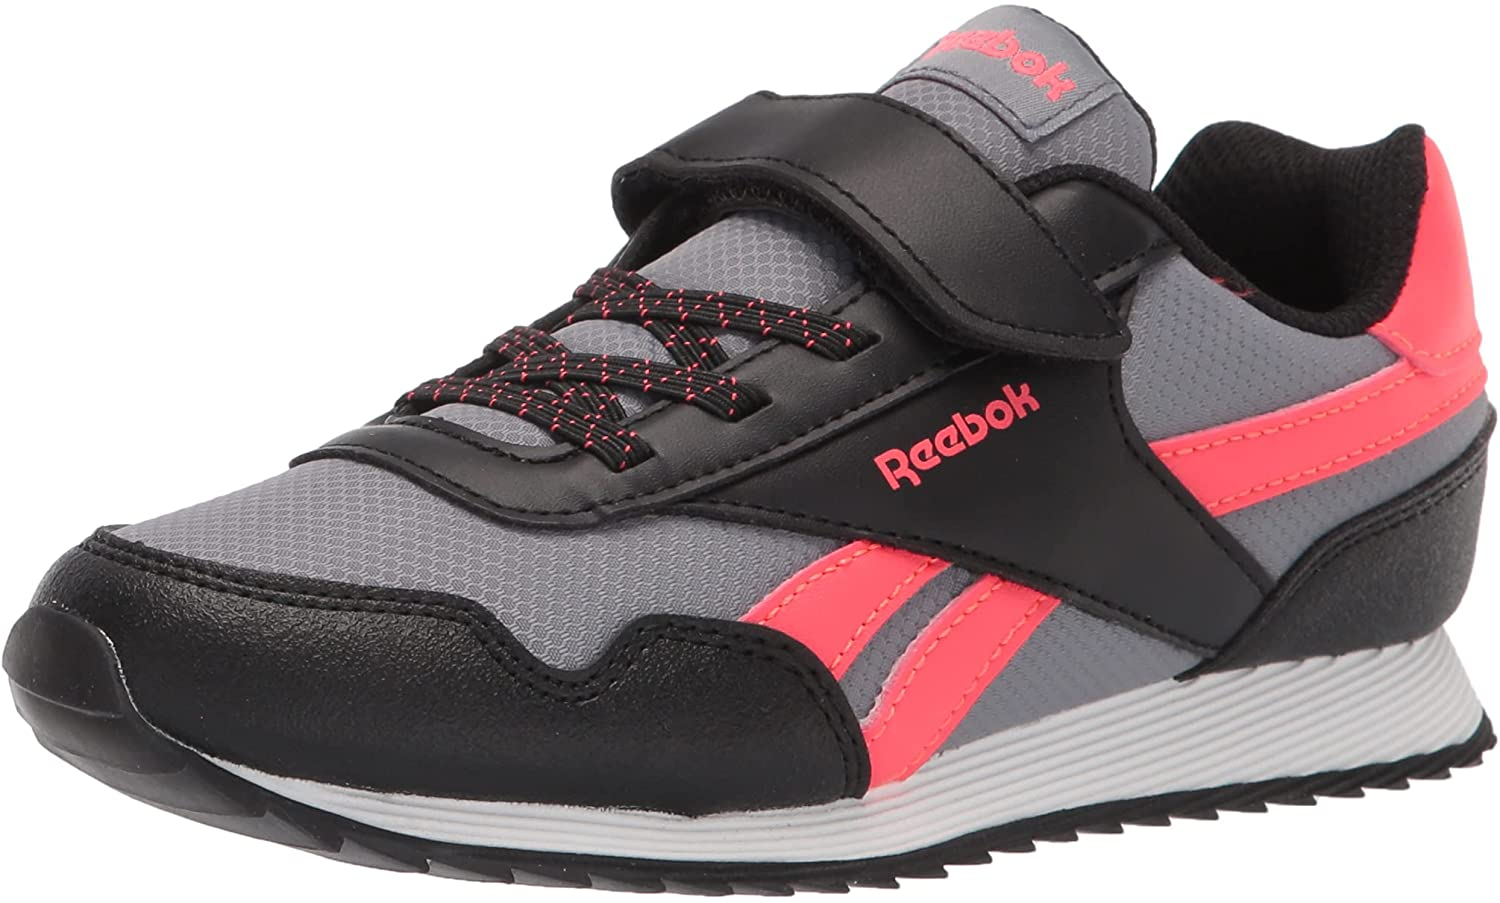 Product Reebok Unisex-Child Classic Jogger Sneaker 3.0 All items free shipping